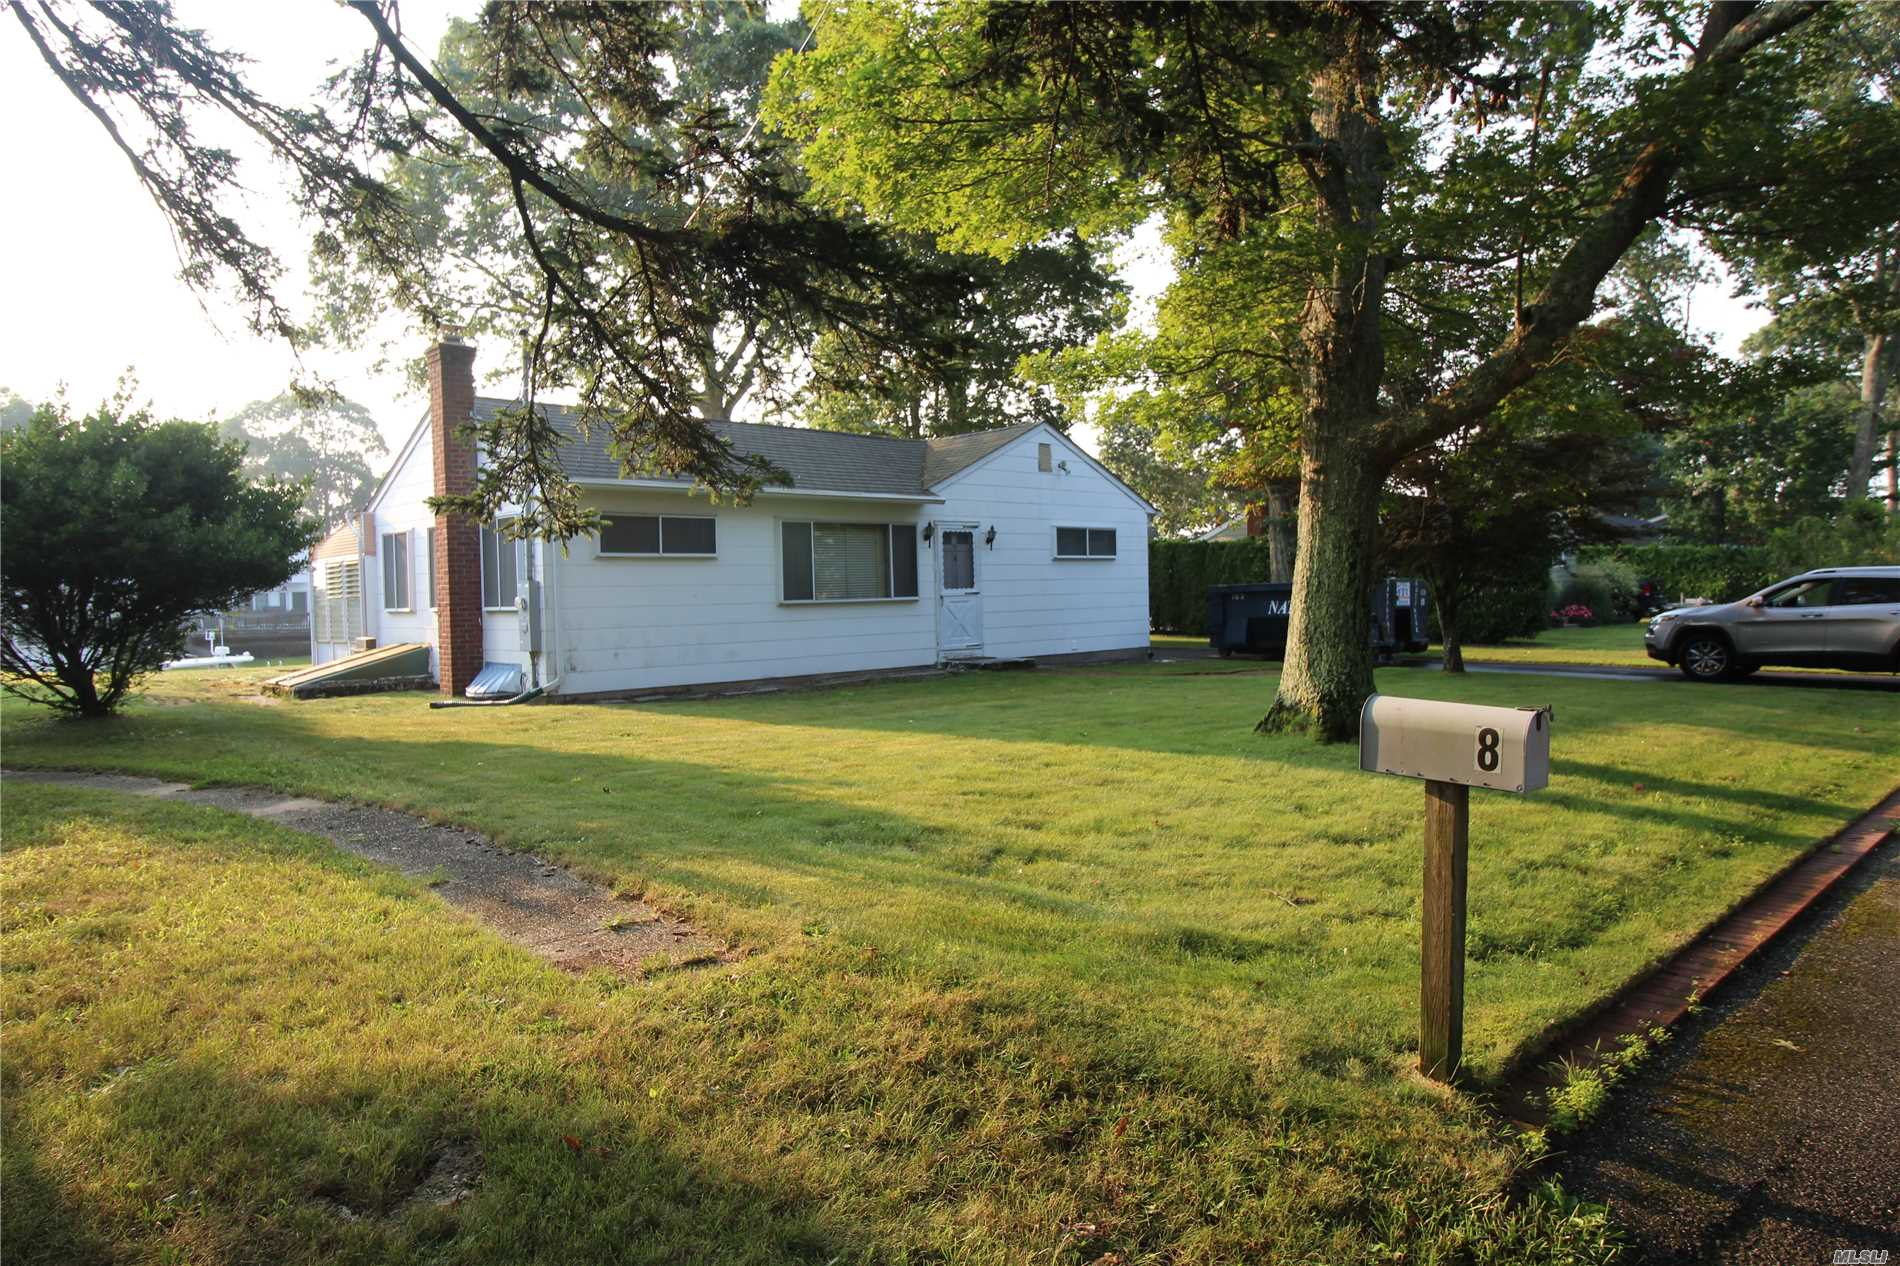 Canalfront Ranch In Shinnecock Shores Private Waterfront Community. House Built In 1956 Is In Poor Condition And Either Requires Complete Renovation Or Removal & Rebuild. House Has Nice Elevation & Is Not In Flood Zone. New 75' Vinyl Bulkhead Almost Completed. Floating Dock For Max. 35' Boat. Property Being Sold In As Is Condition. Current Footprint 1.456+-Sq.Ft,